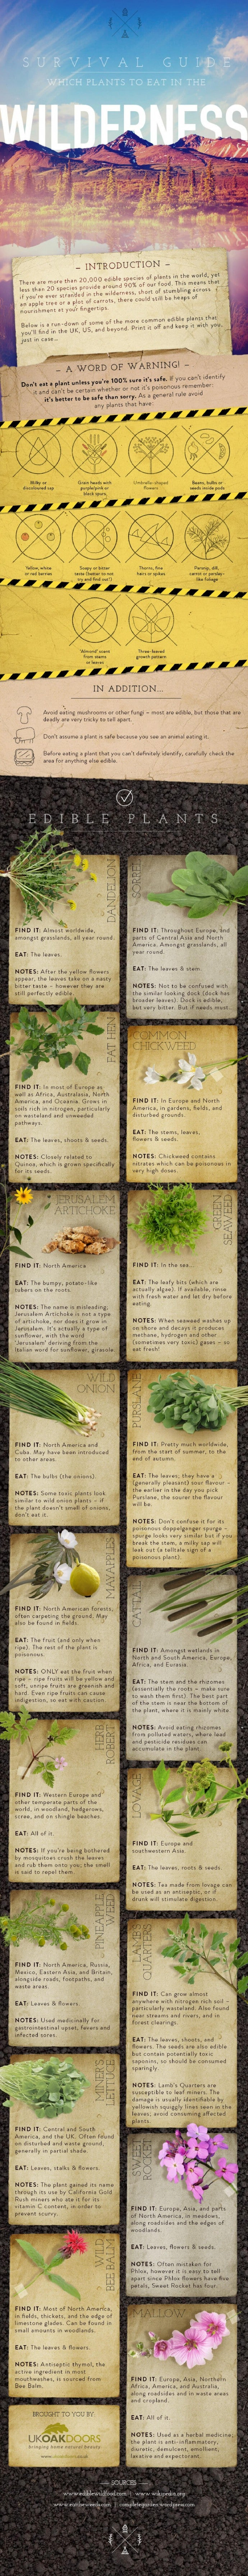 Learn About Common Edible Plants In the Wild with This Visual Guide